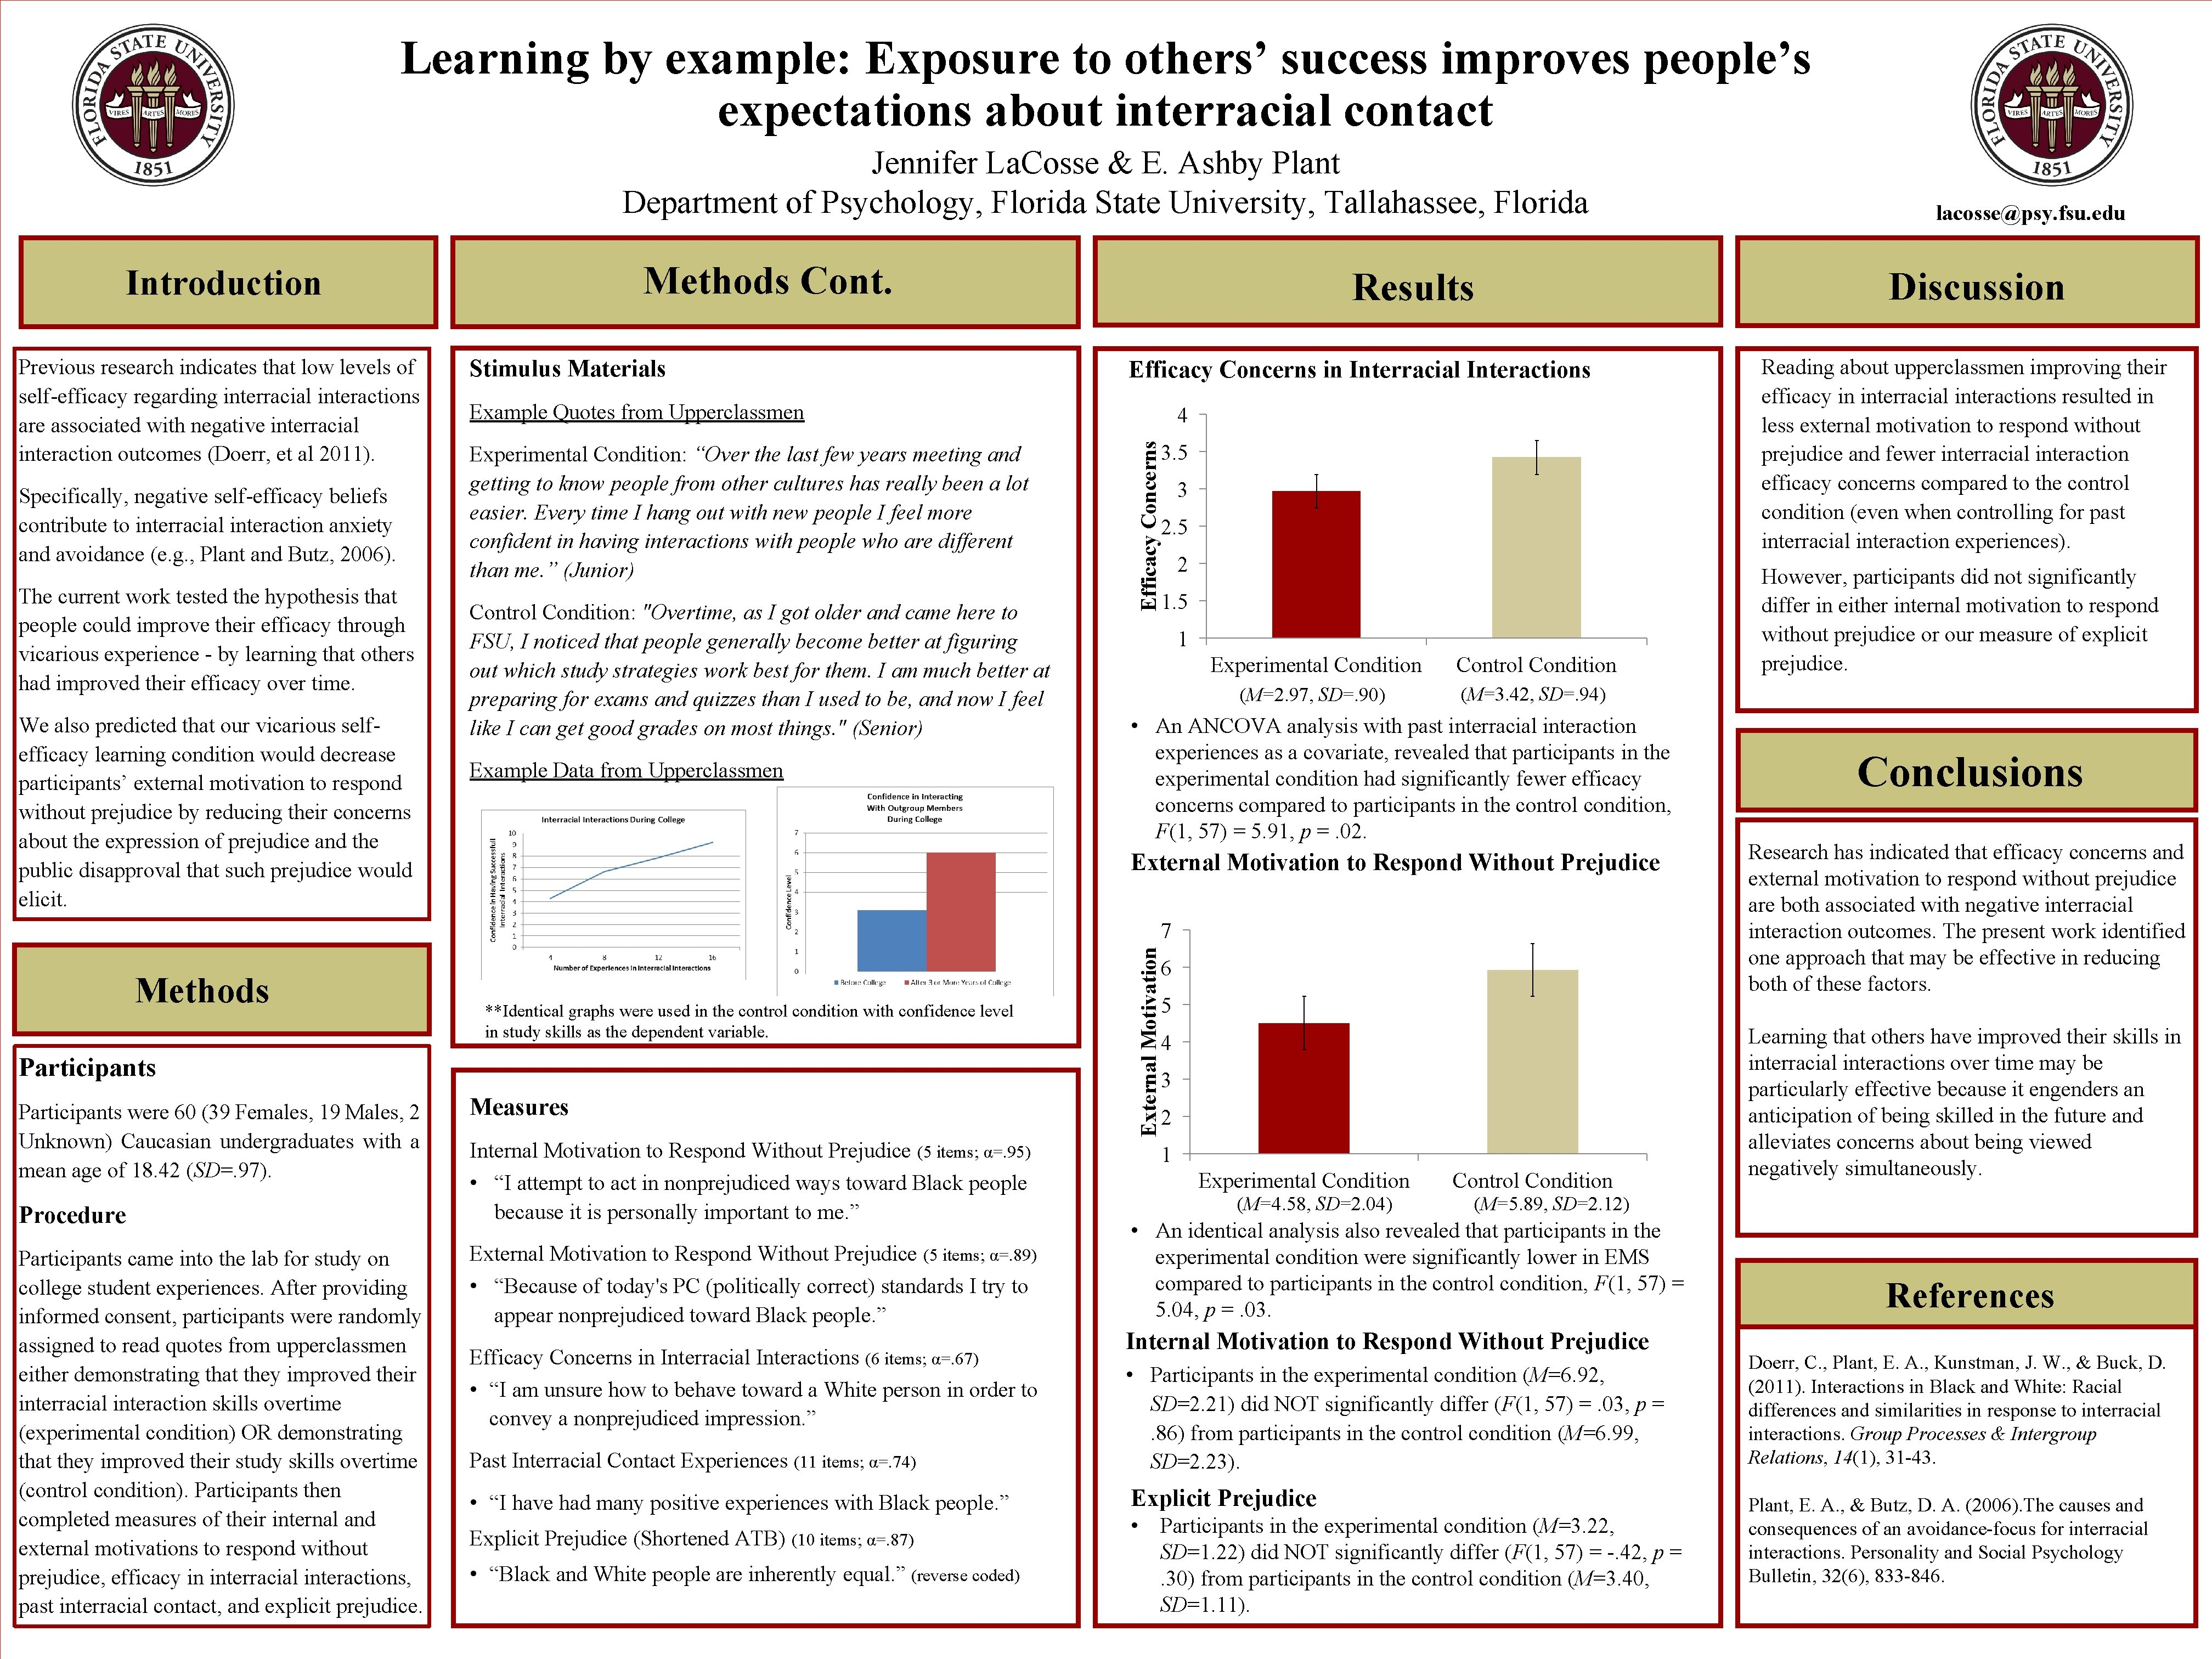 Learning by example: Exposure to others' success improves people's expectations about interracial contact Jennifer